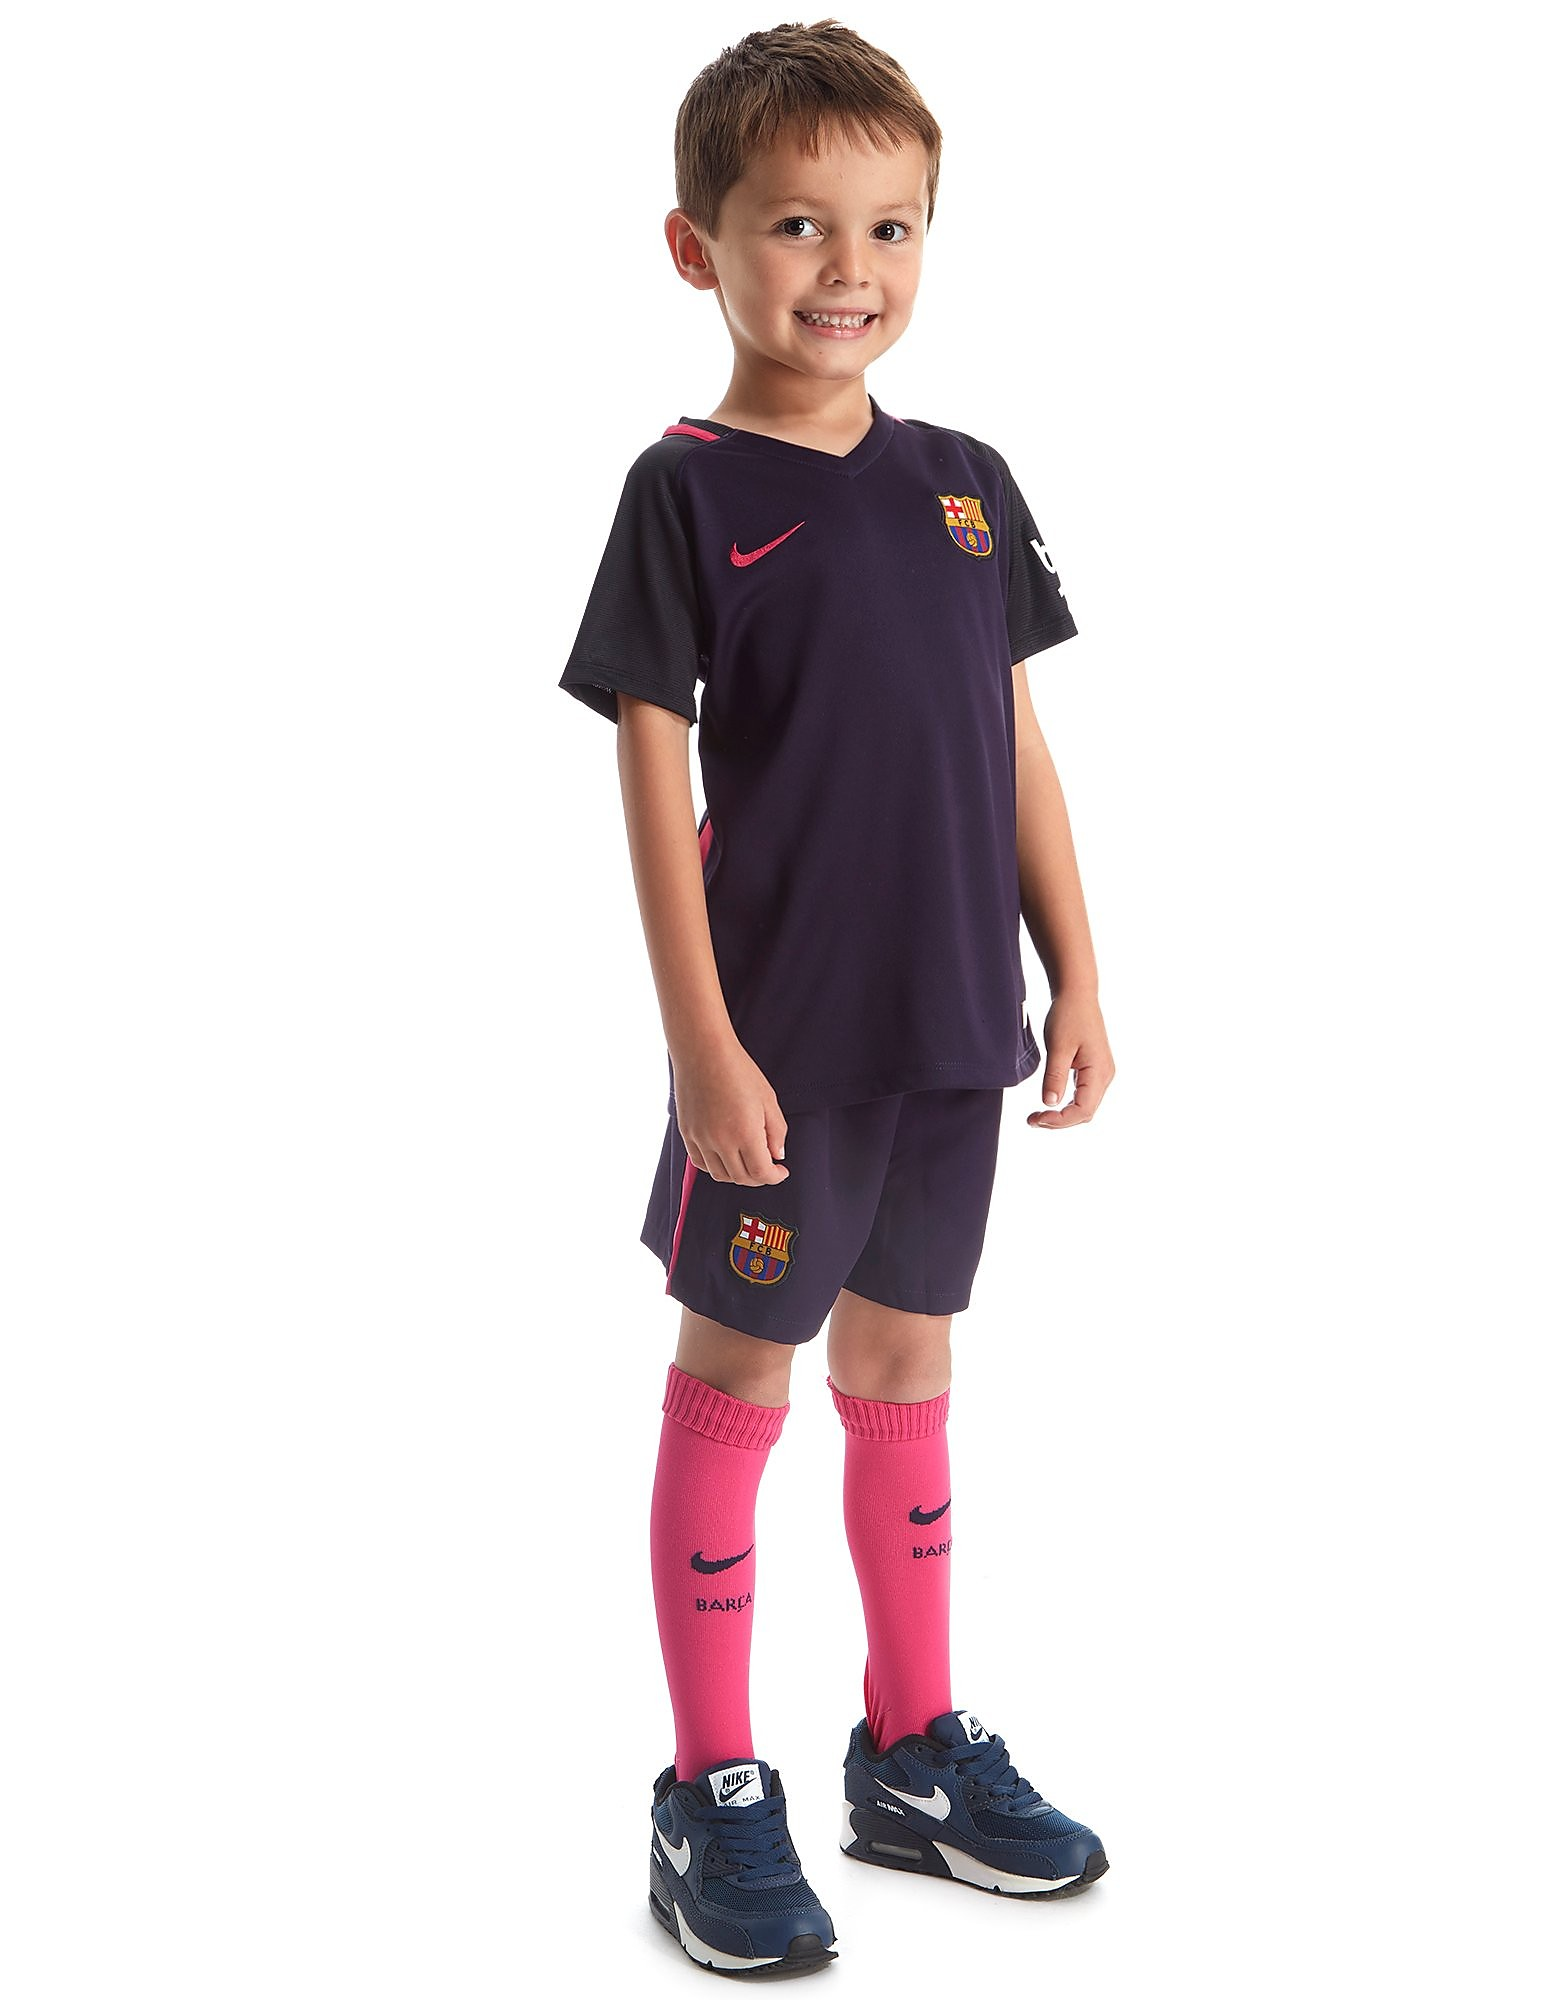 Nike FC Barcelona 2016/17 Away Kit Children